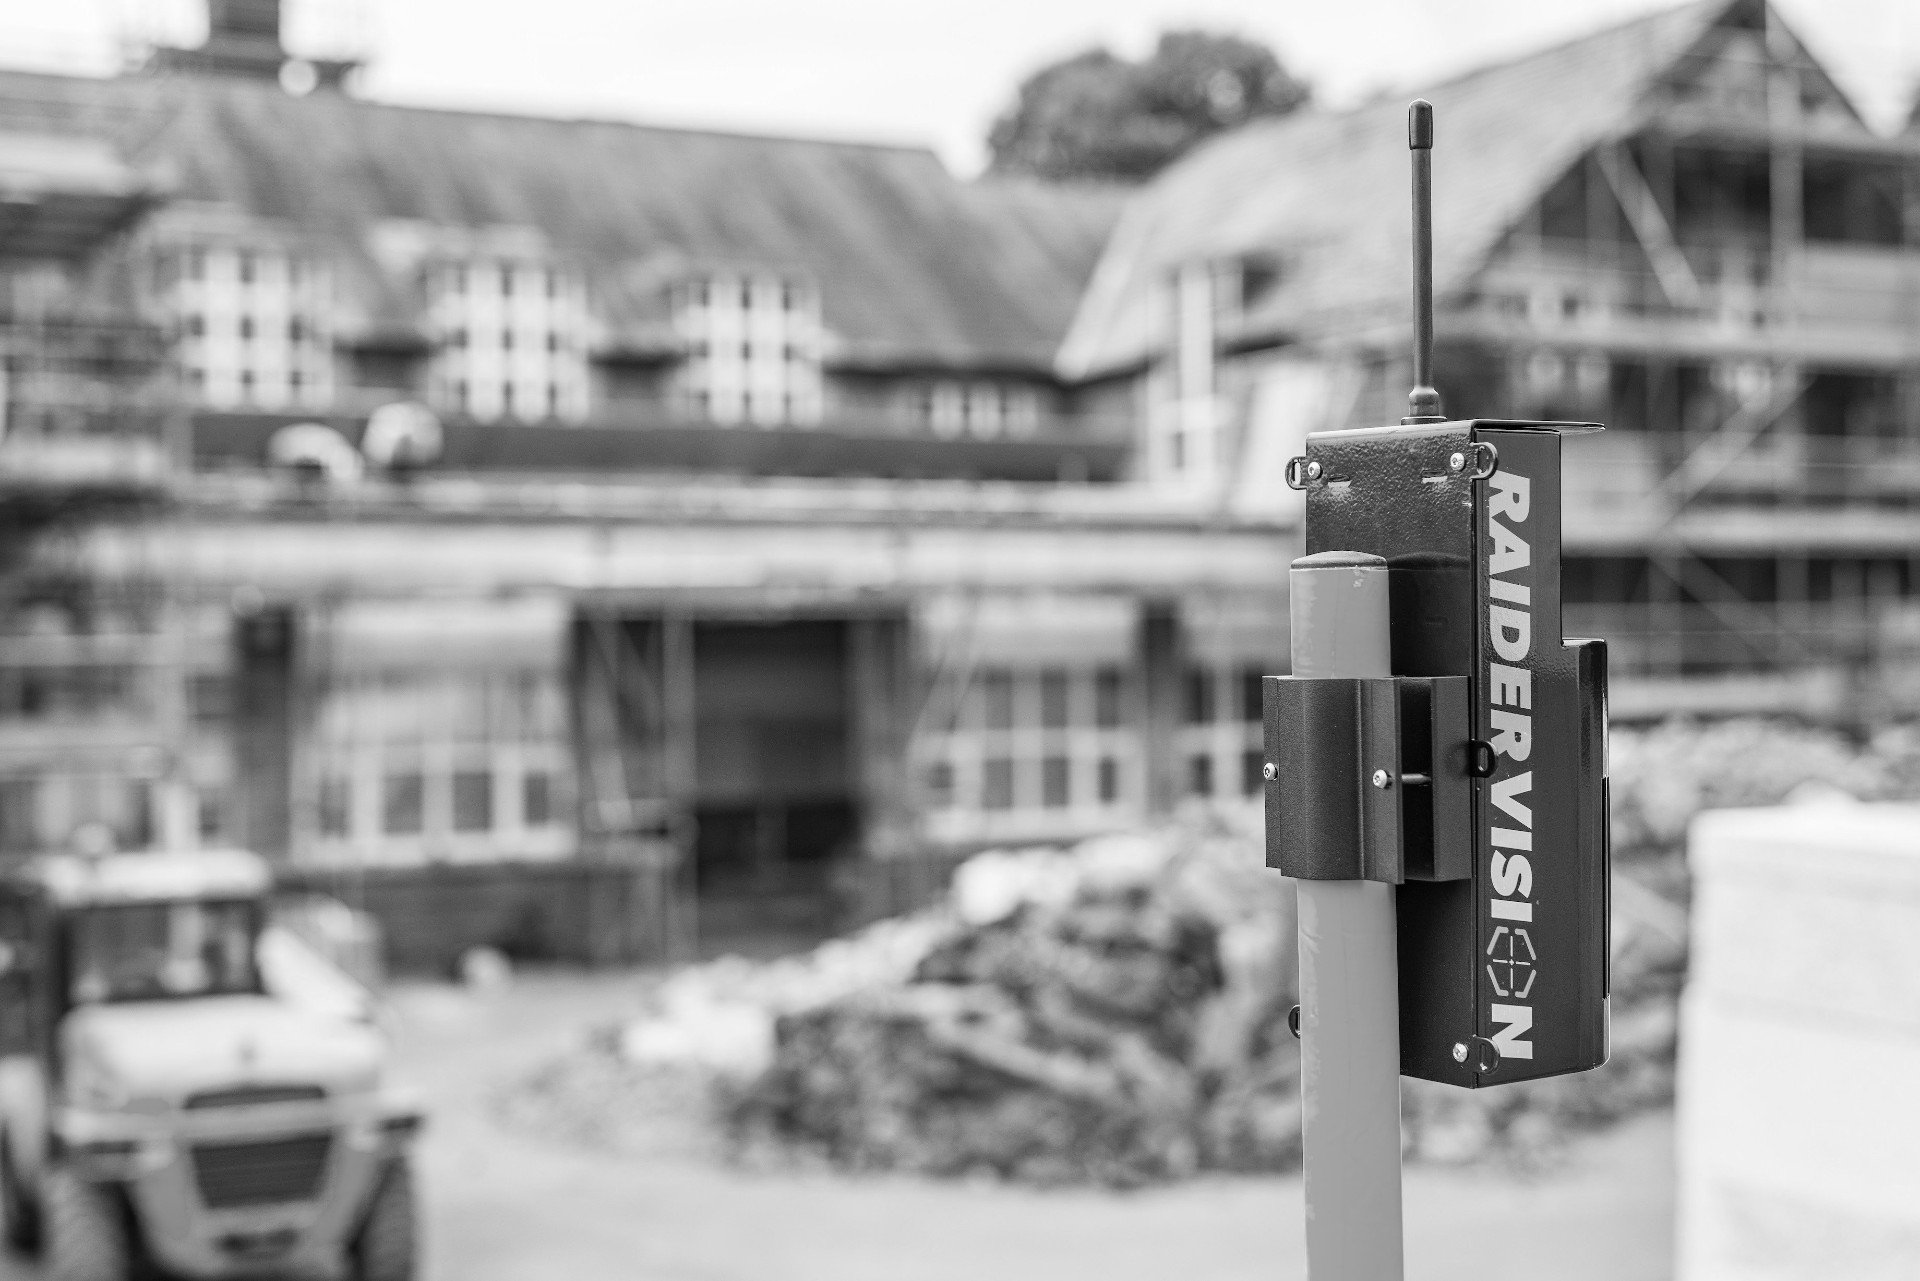 Black and white image of a RaiderVision alarm unit protecting a building site